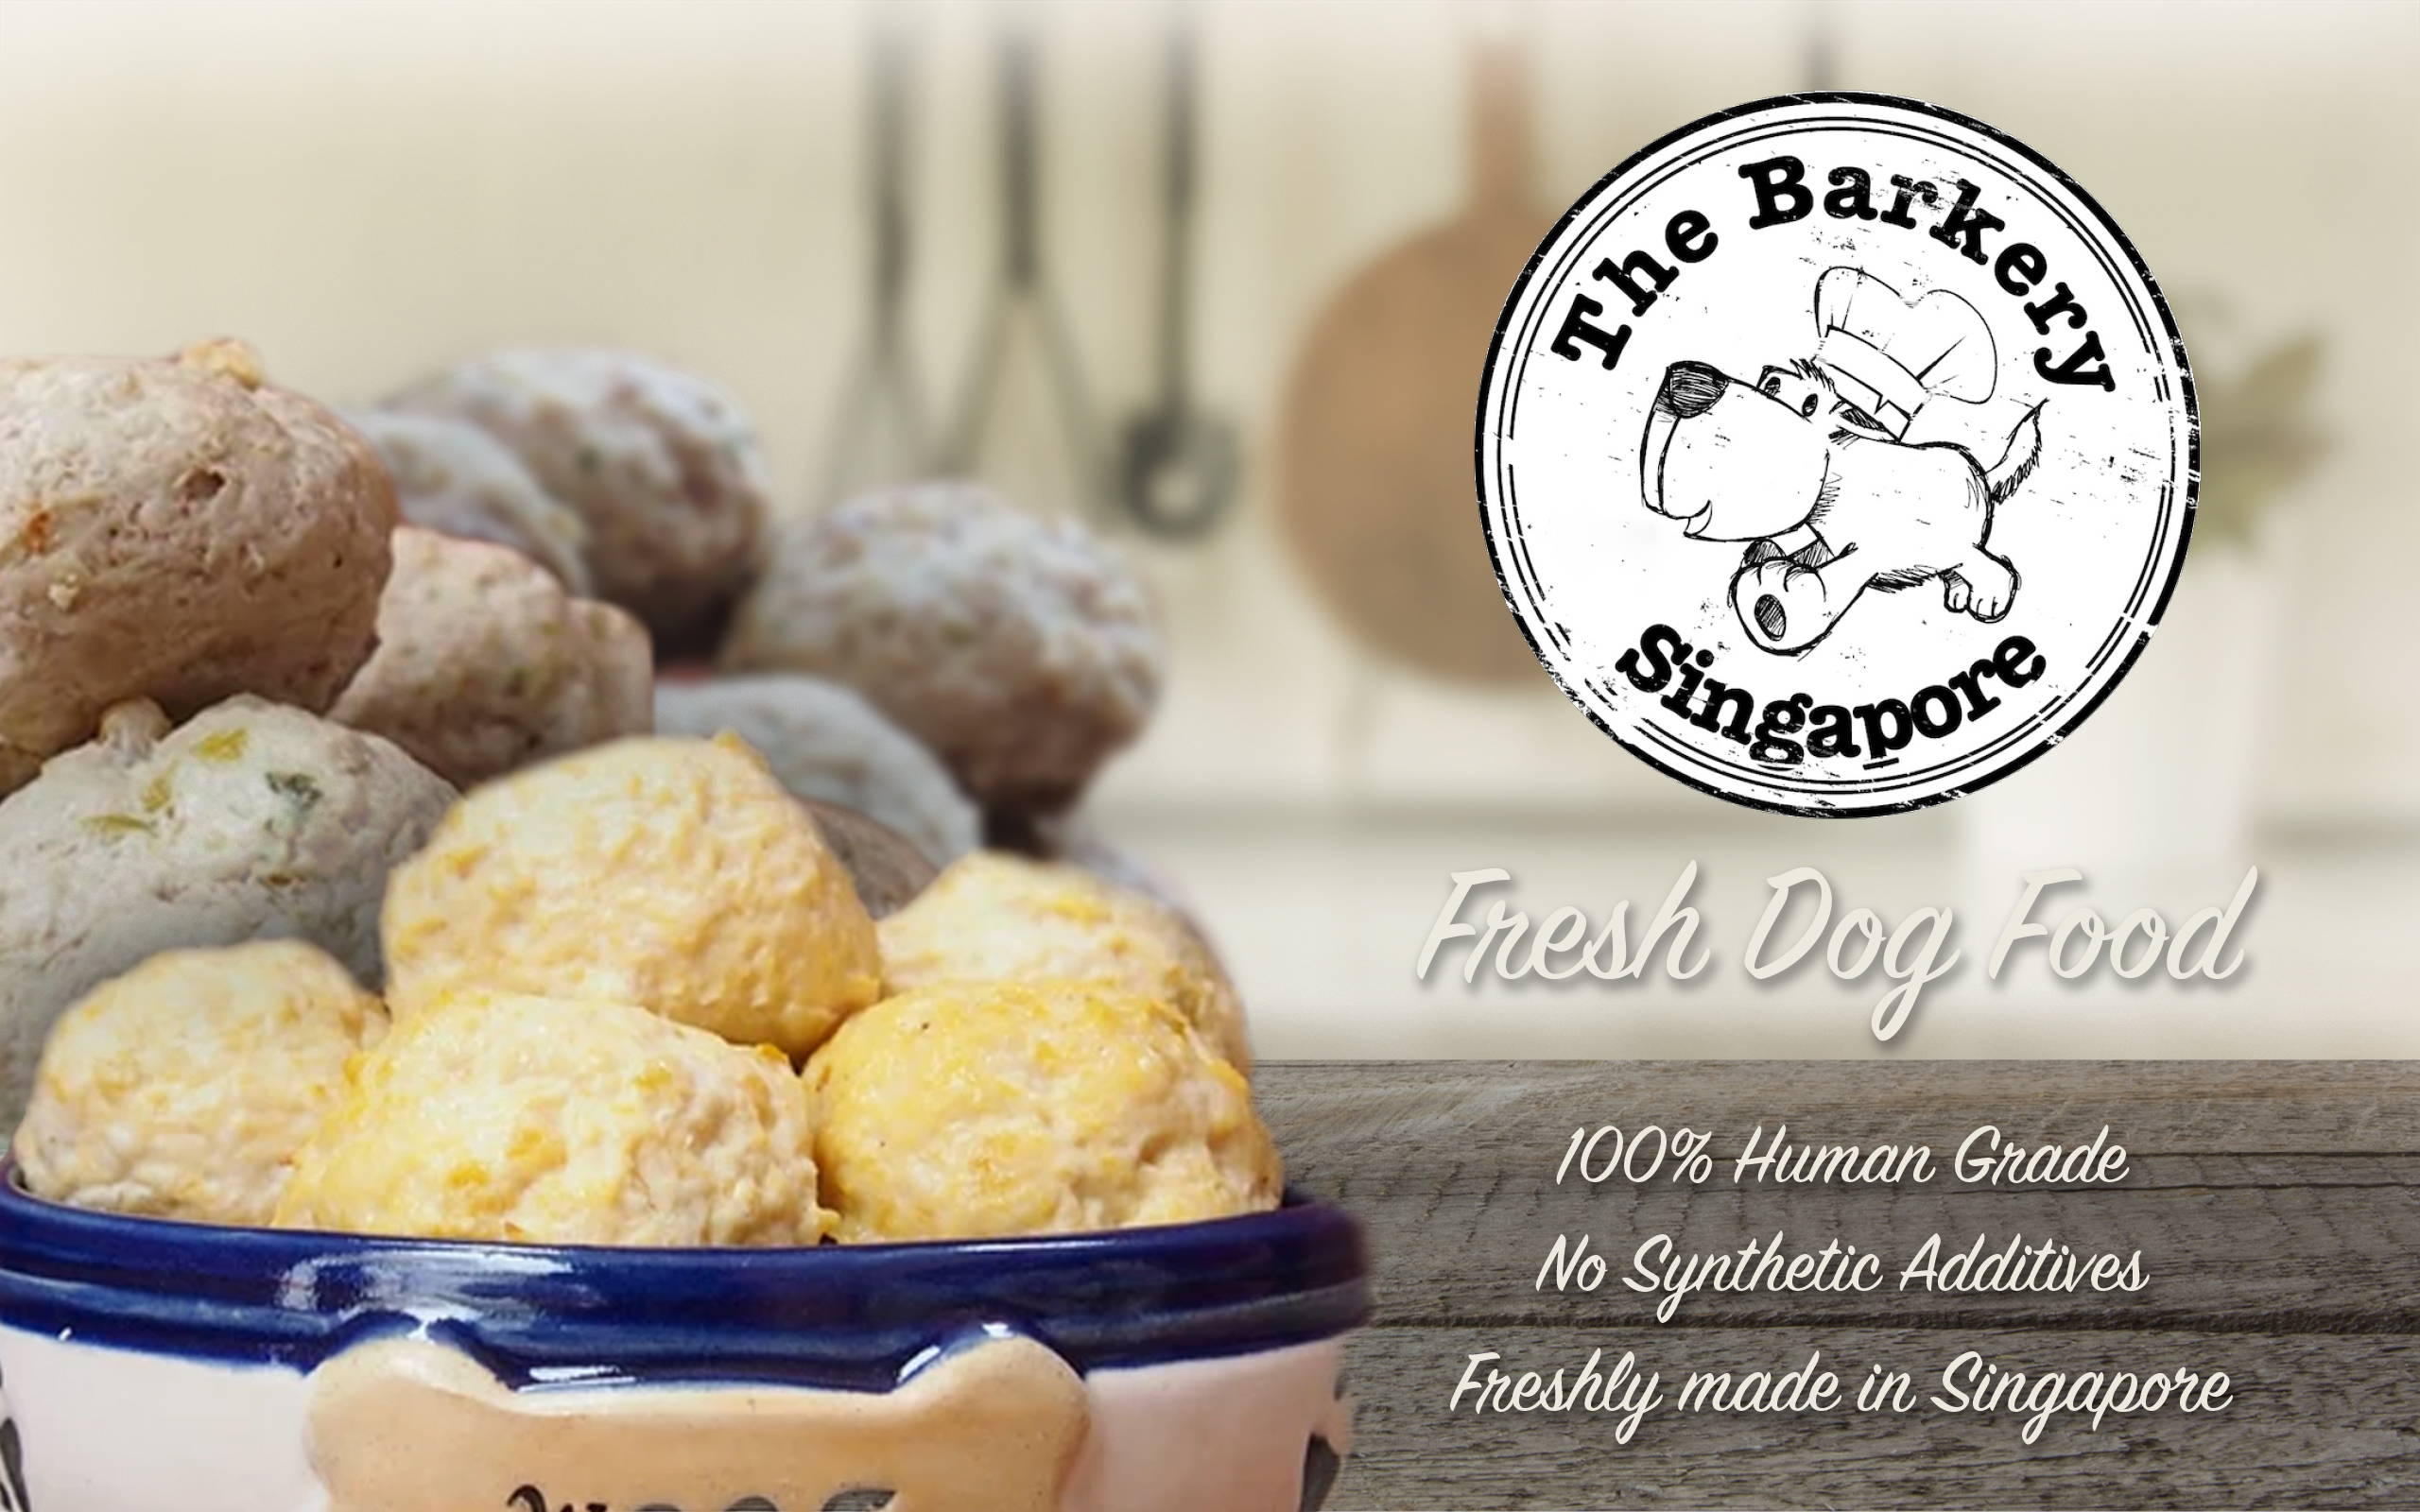 The barkery fresh dog food mutt balls collection